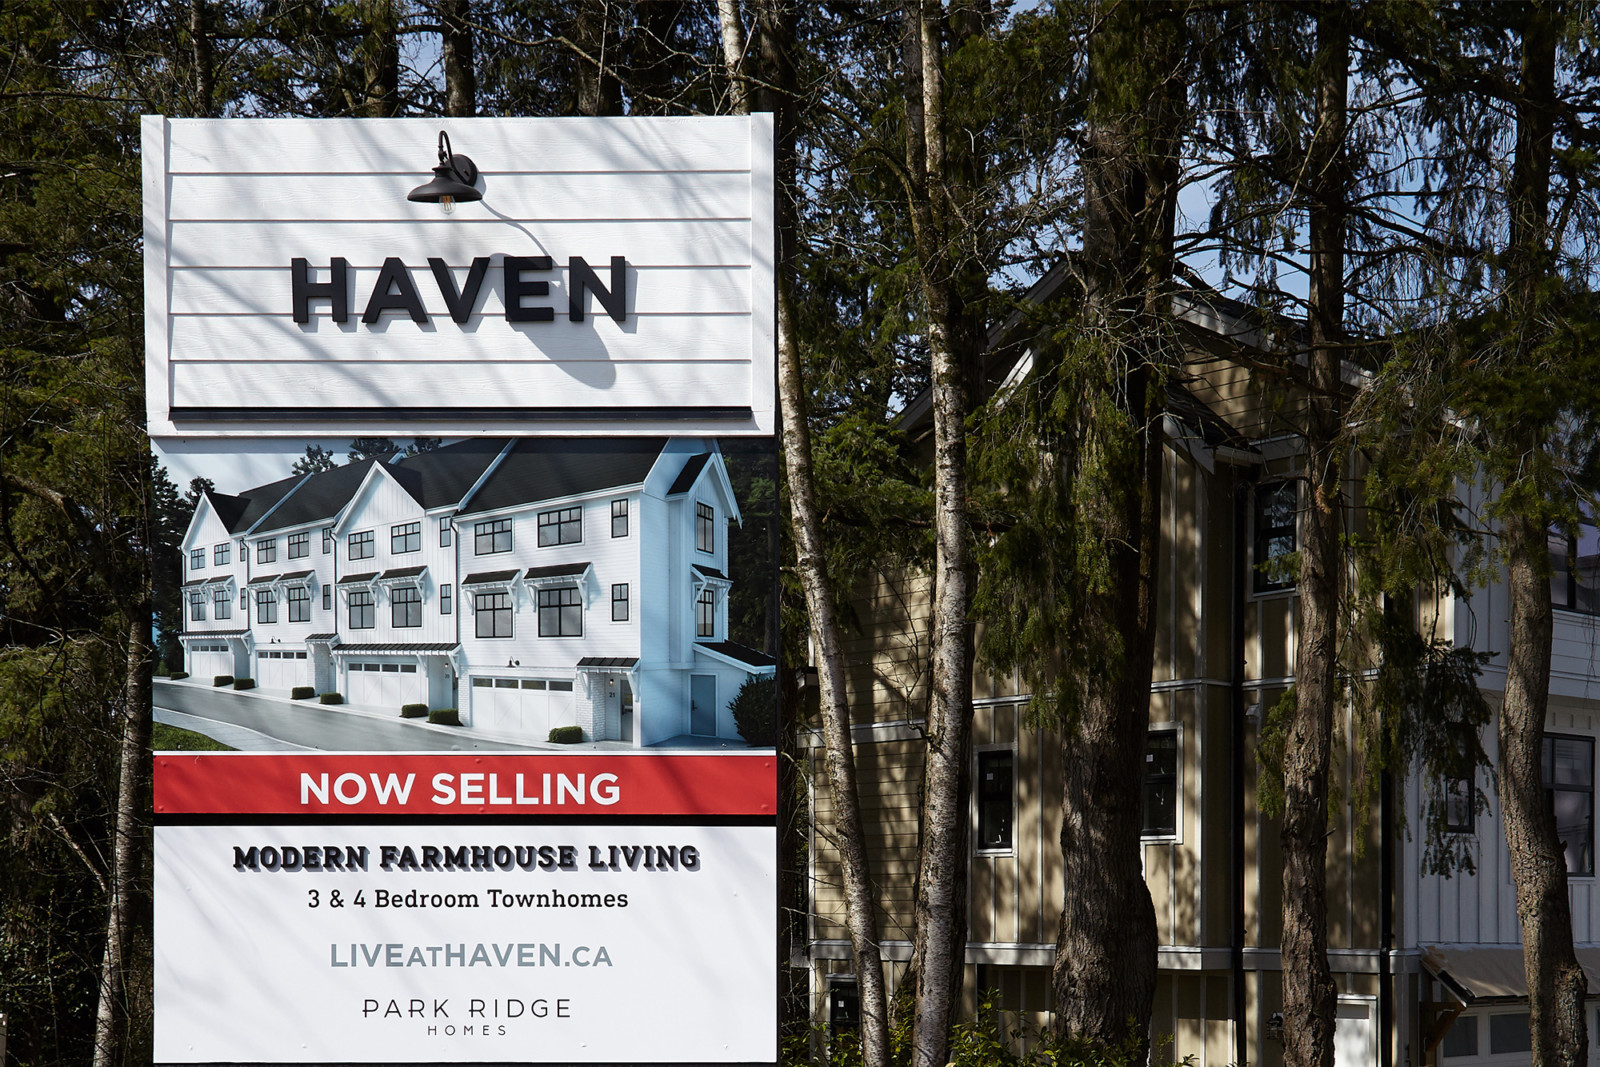 Haven real estate main signage